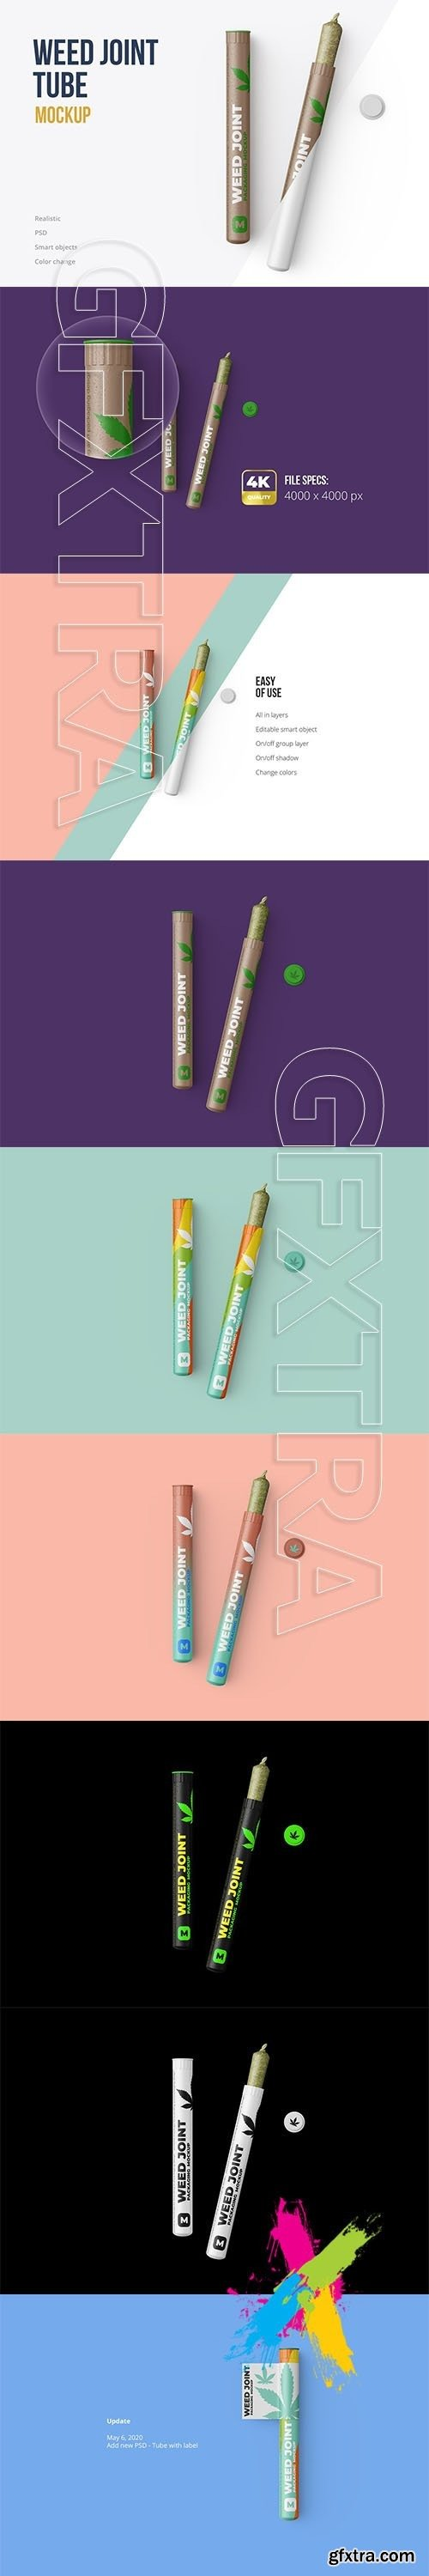 CreativeMarket - Weed Joint Pre-Roll Tubes Mockup 4834895